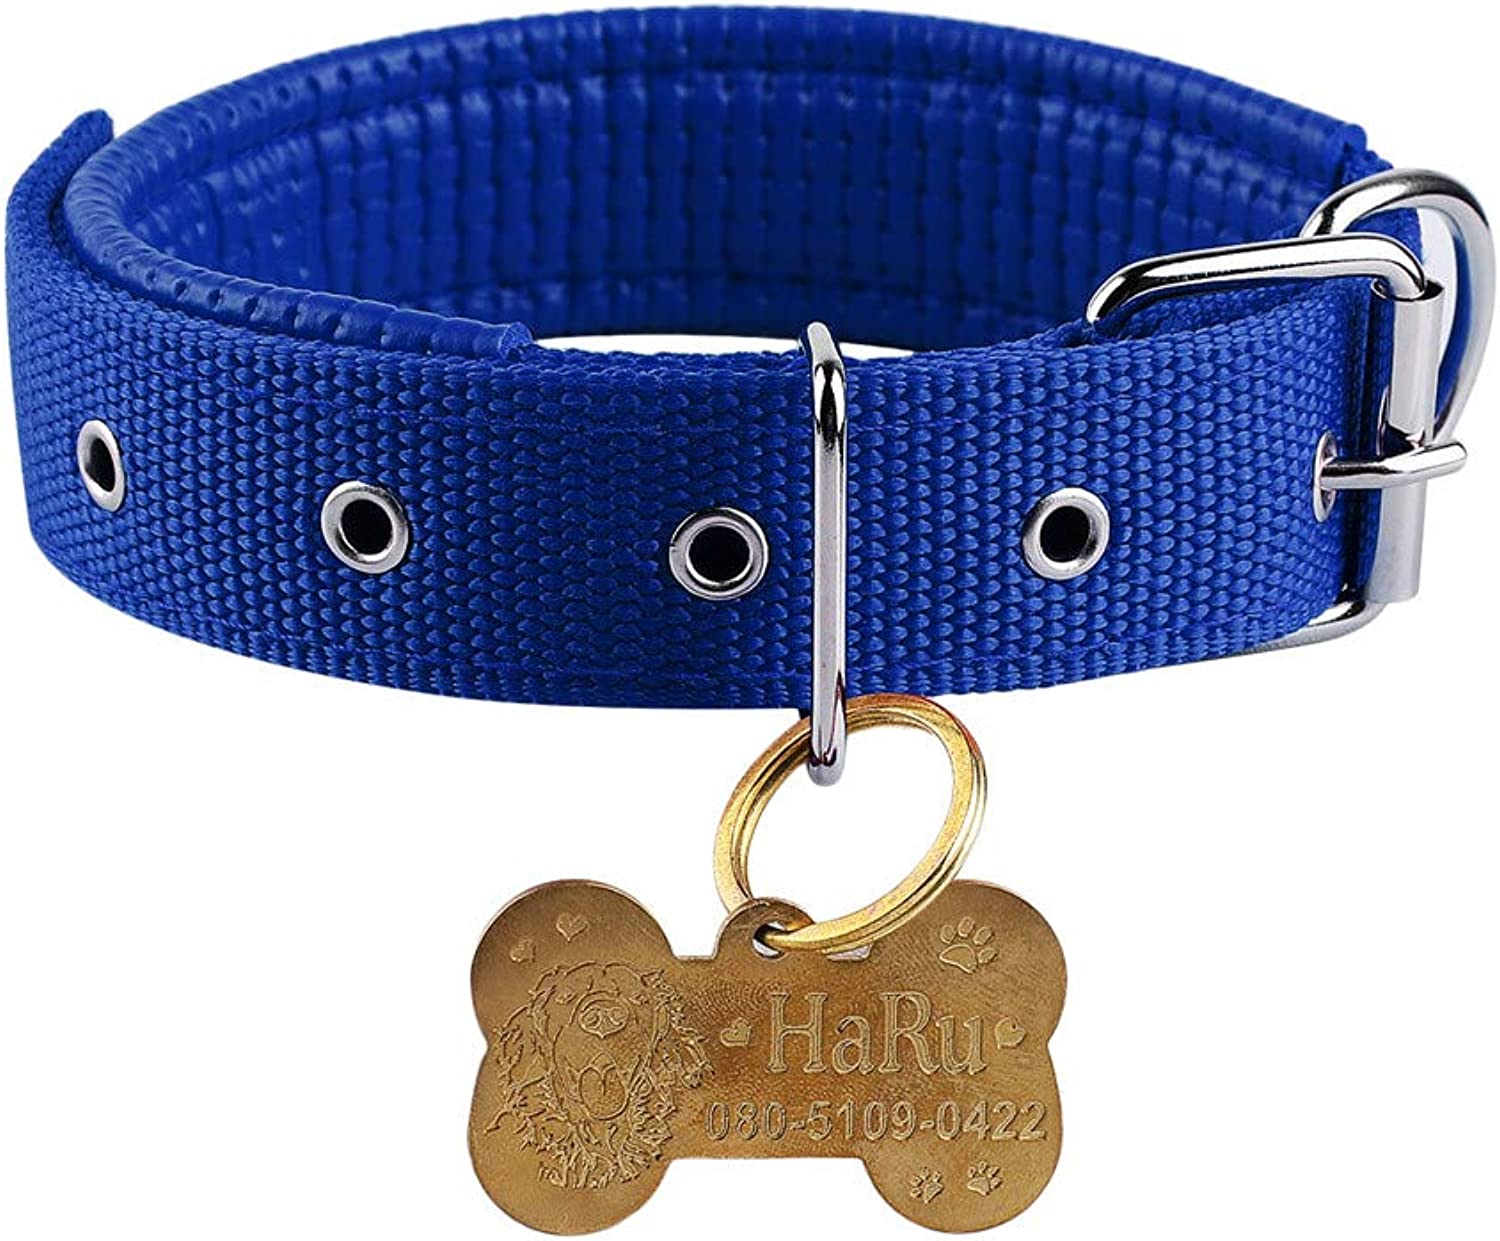 Boknight Personalised Dog Collars for Small Medium Large Dogs, Stainless Steel Bone Shaped Dog Tag Free Engraving for Cats Dogs